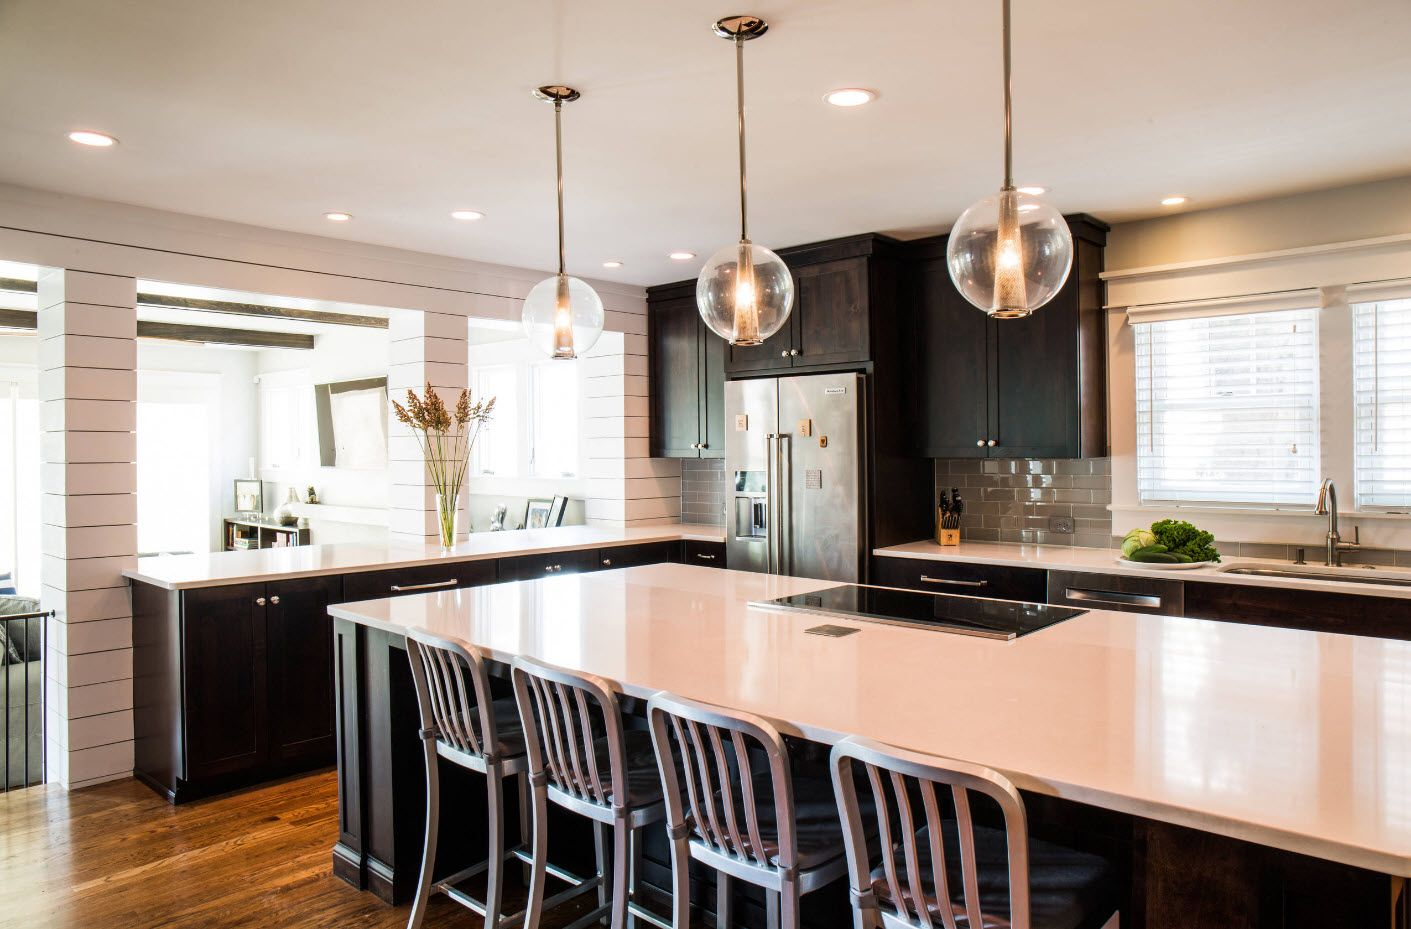 Dining zone at the large multifunctional zone of the kitchen with white matted ceiling and glossy countertop in modern style